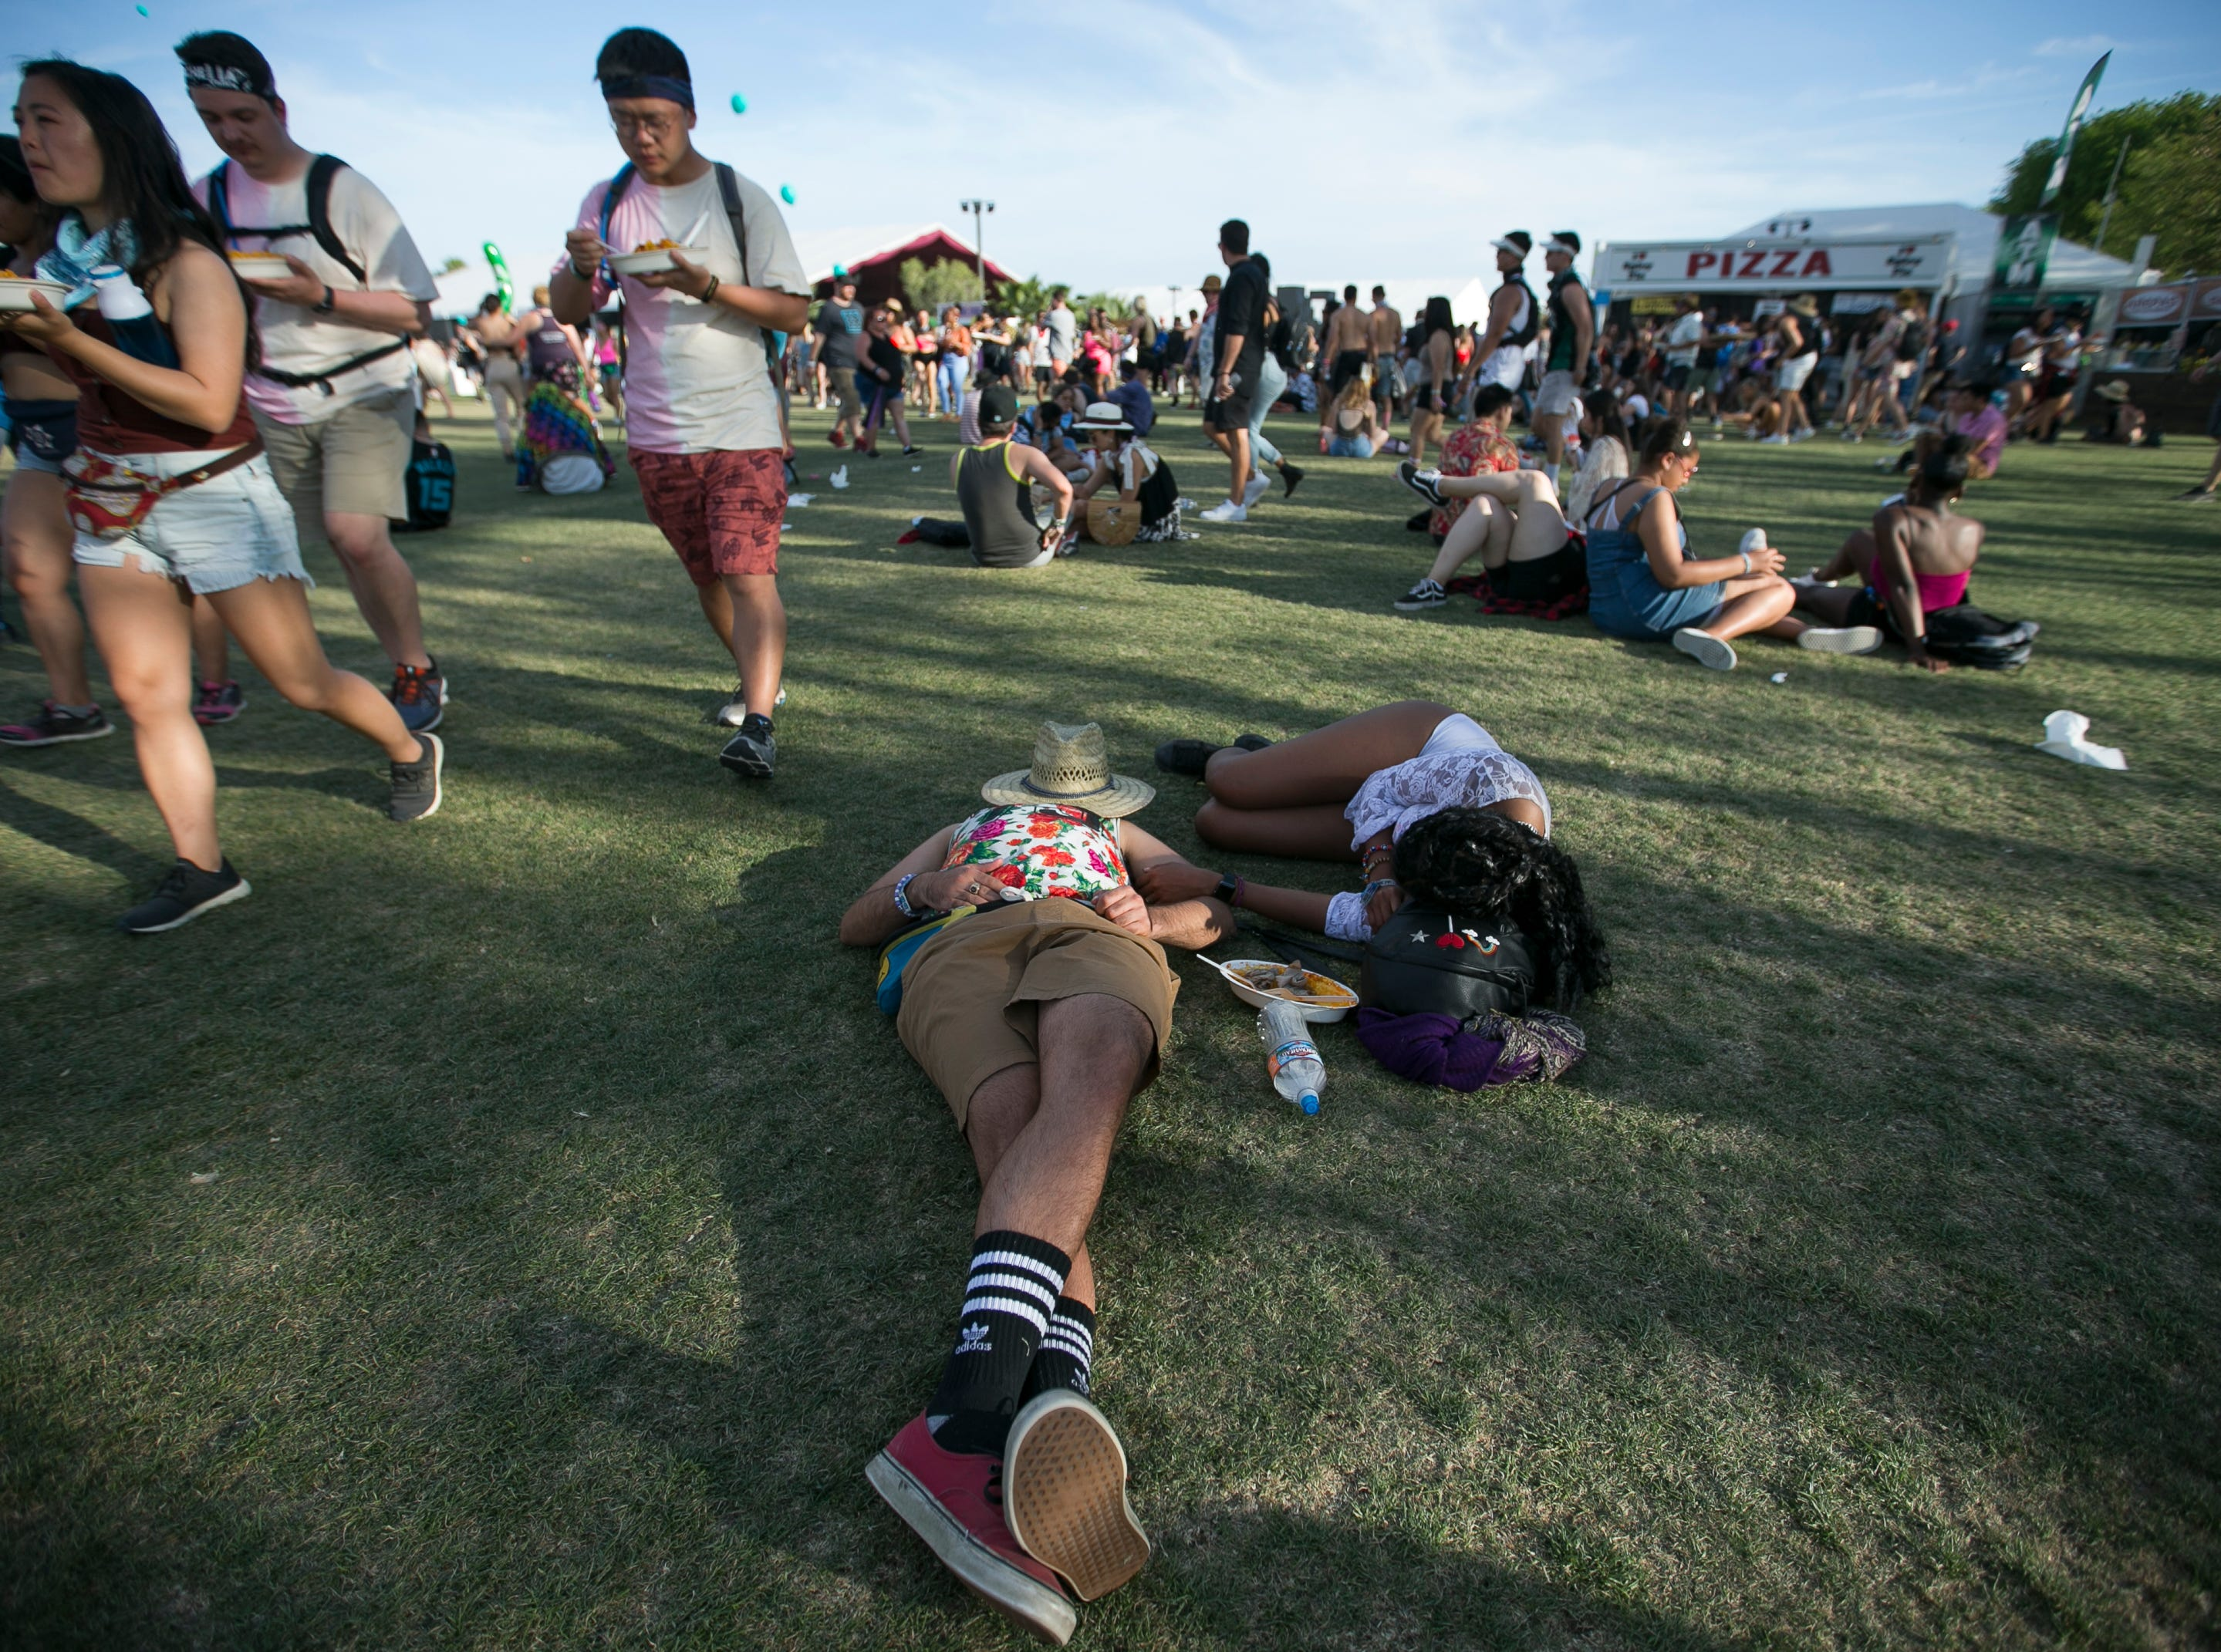 Festival goers lay in the grass at the Coachella Valley Music and Arts Festival in Indio, Calif., on Sunday, April 14, 2019.